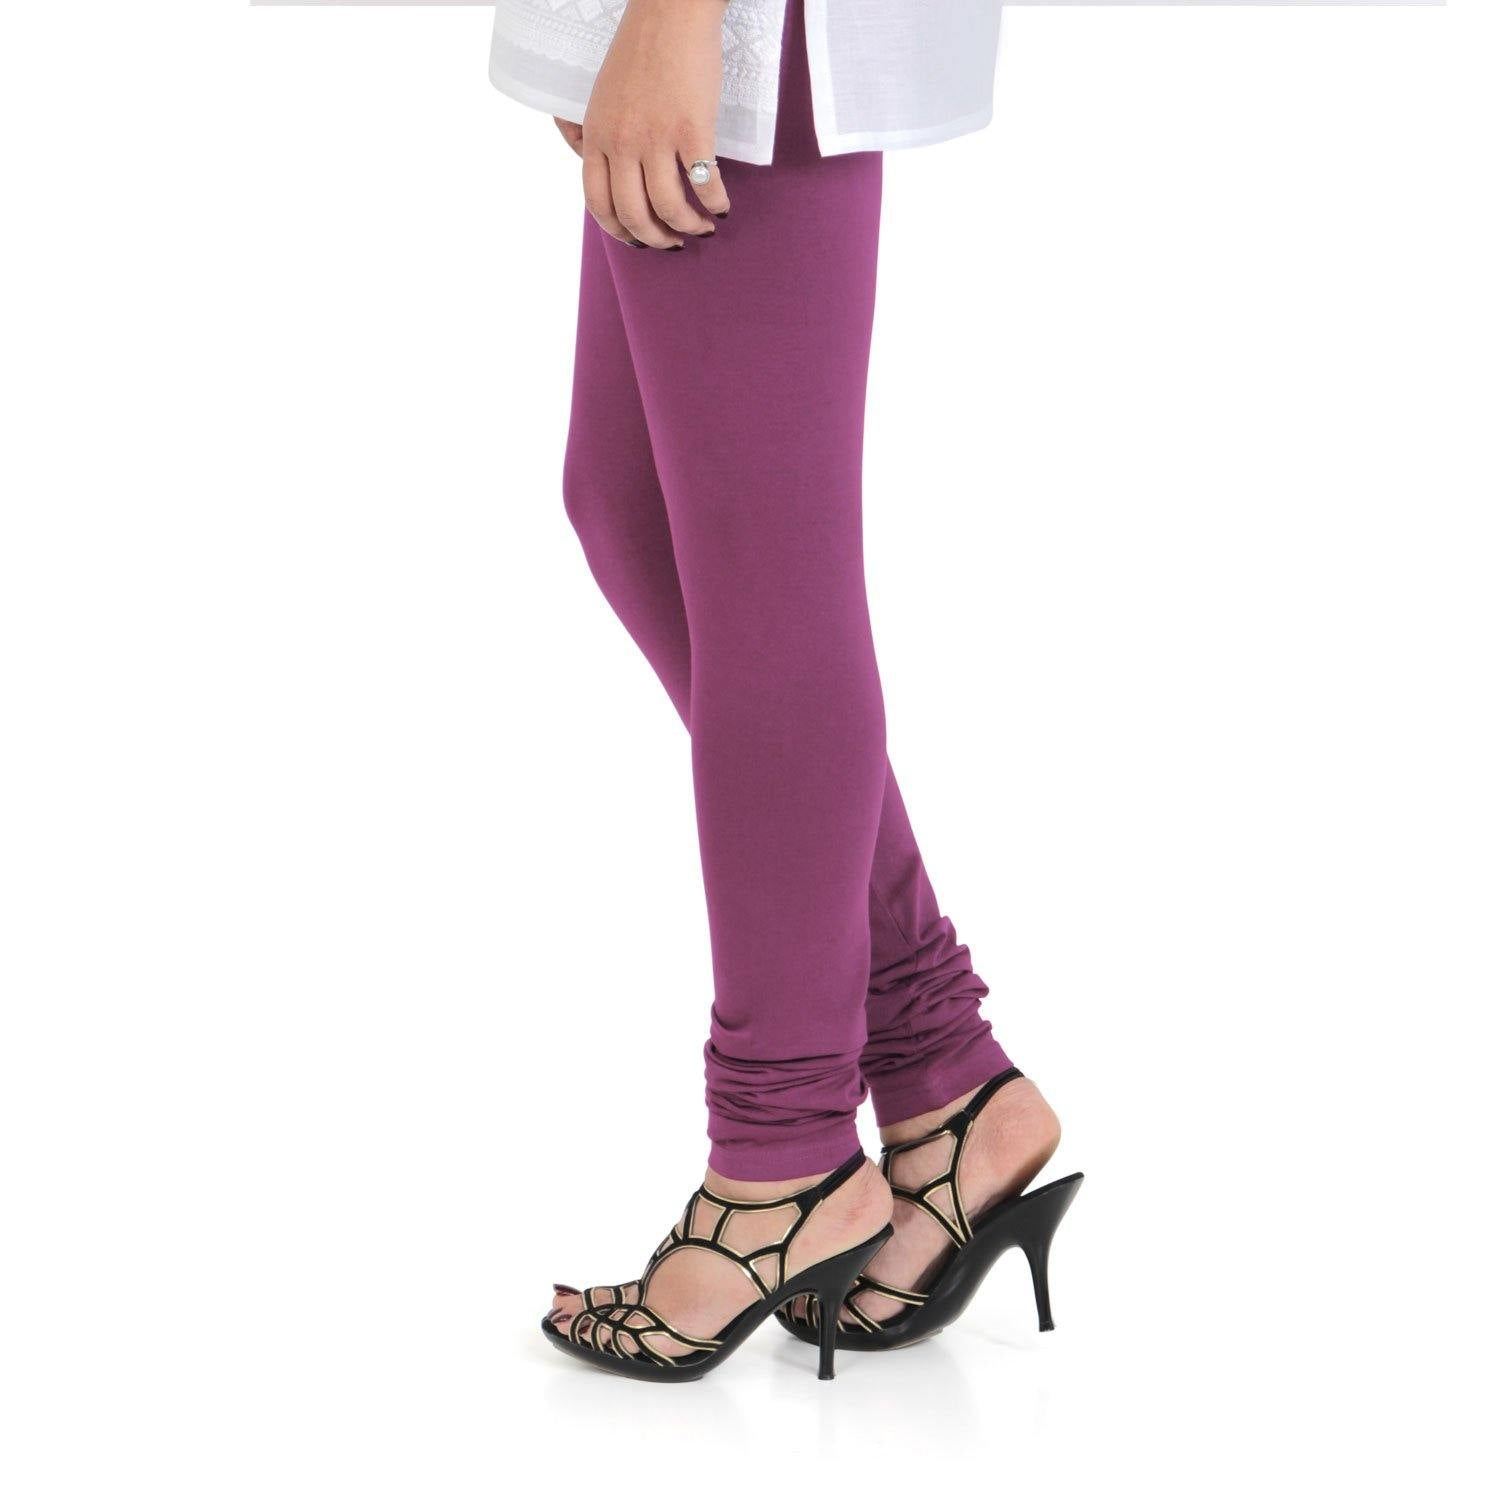 Vami Women's Cotton Stretchable Churidar Legging - Beetroot Purple